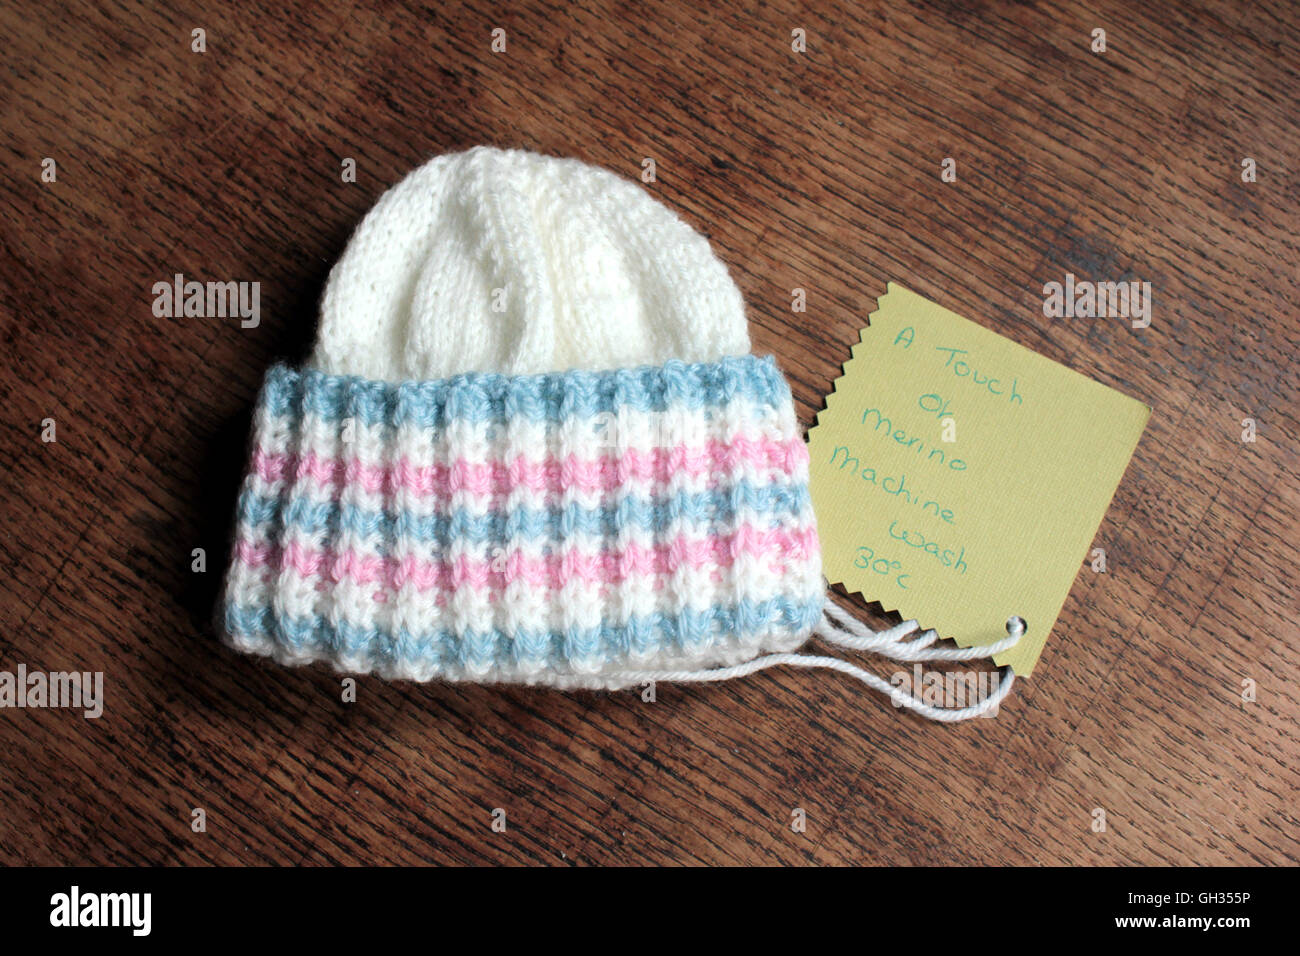 A baby's hat hand knitted from a yarn with a touch of merino wool in the mix - Stock Image